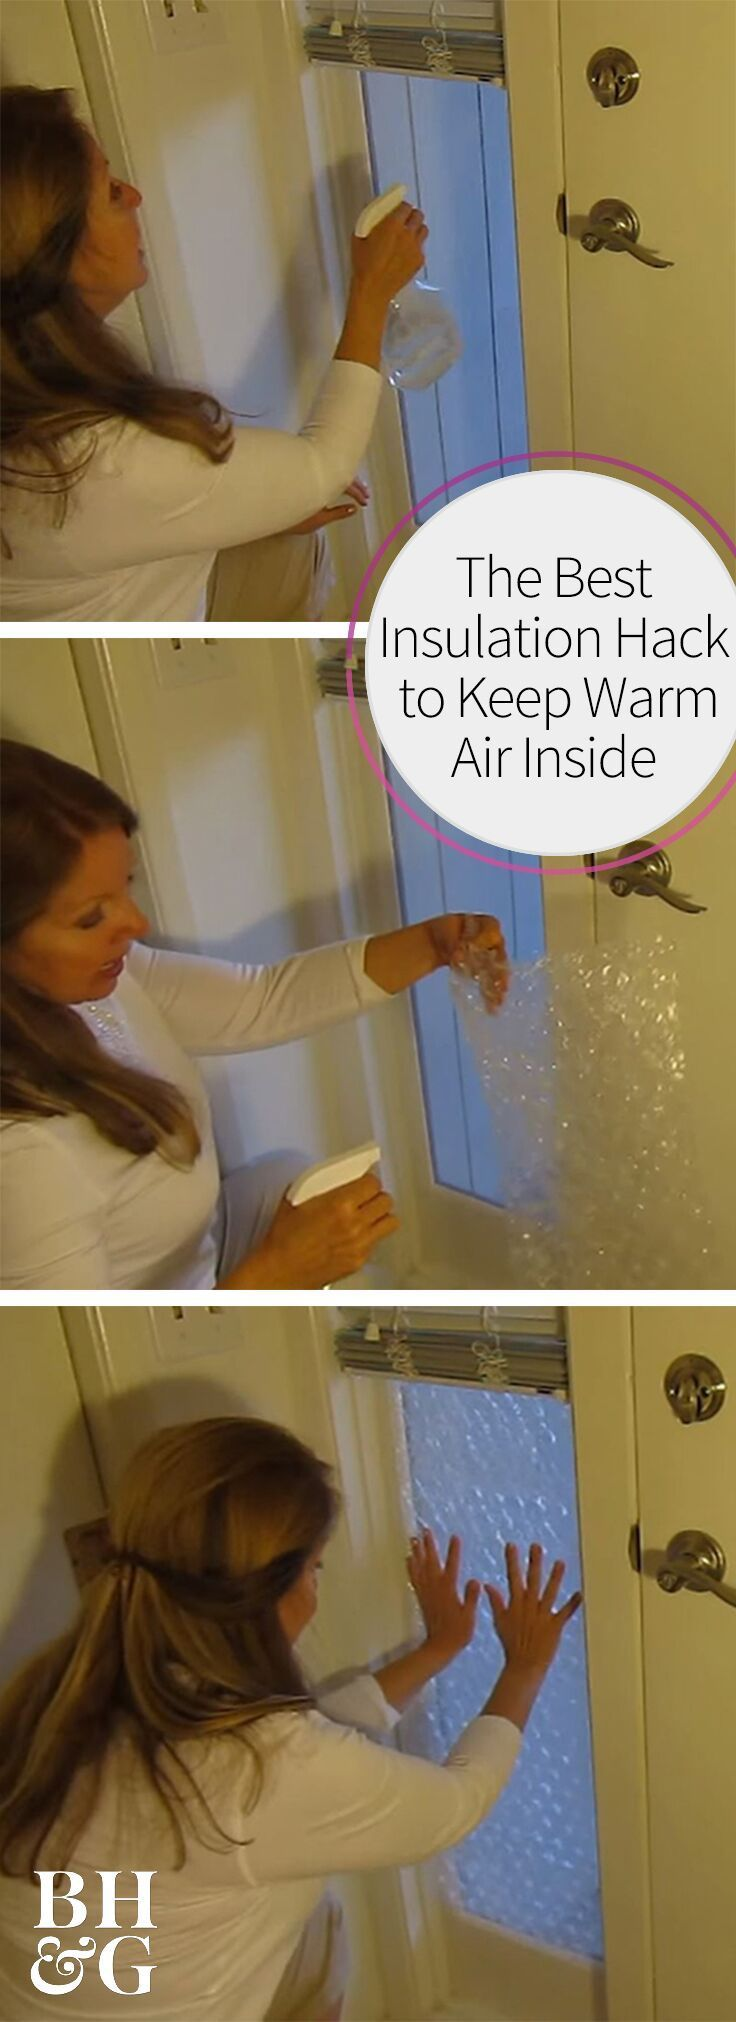 Beat the winter chills and save money on your electric bill with this window insulating hack! Your pocketbook will thank you! #heating #heatingtips #lifehacks